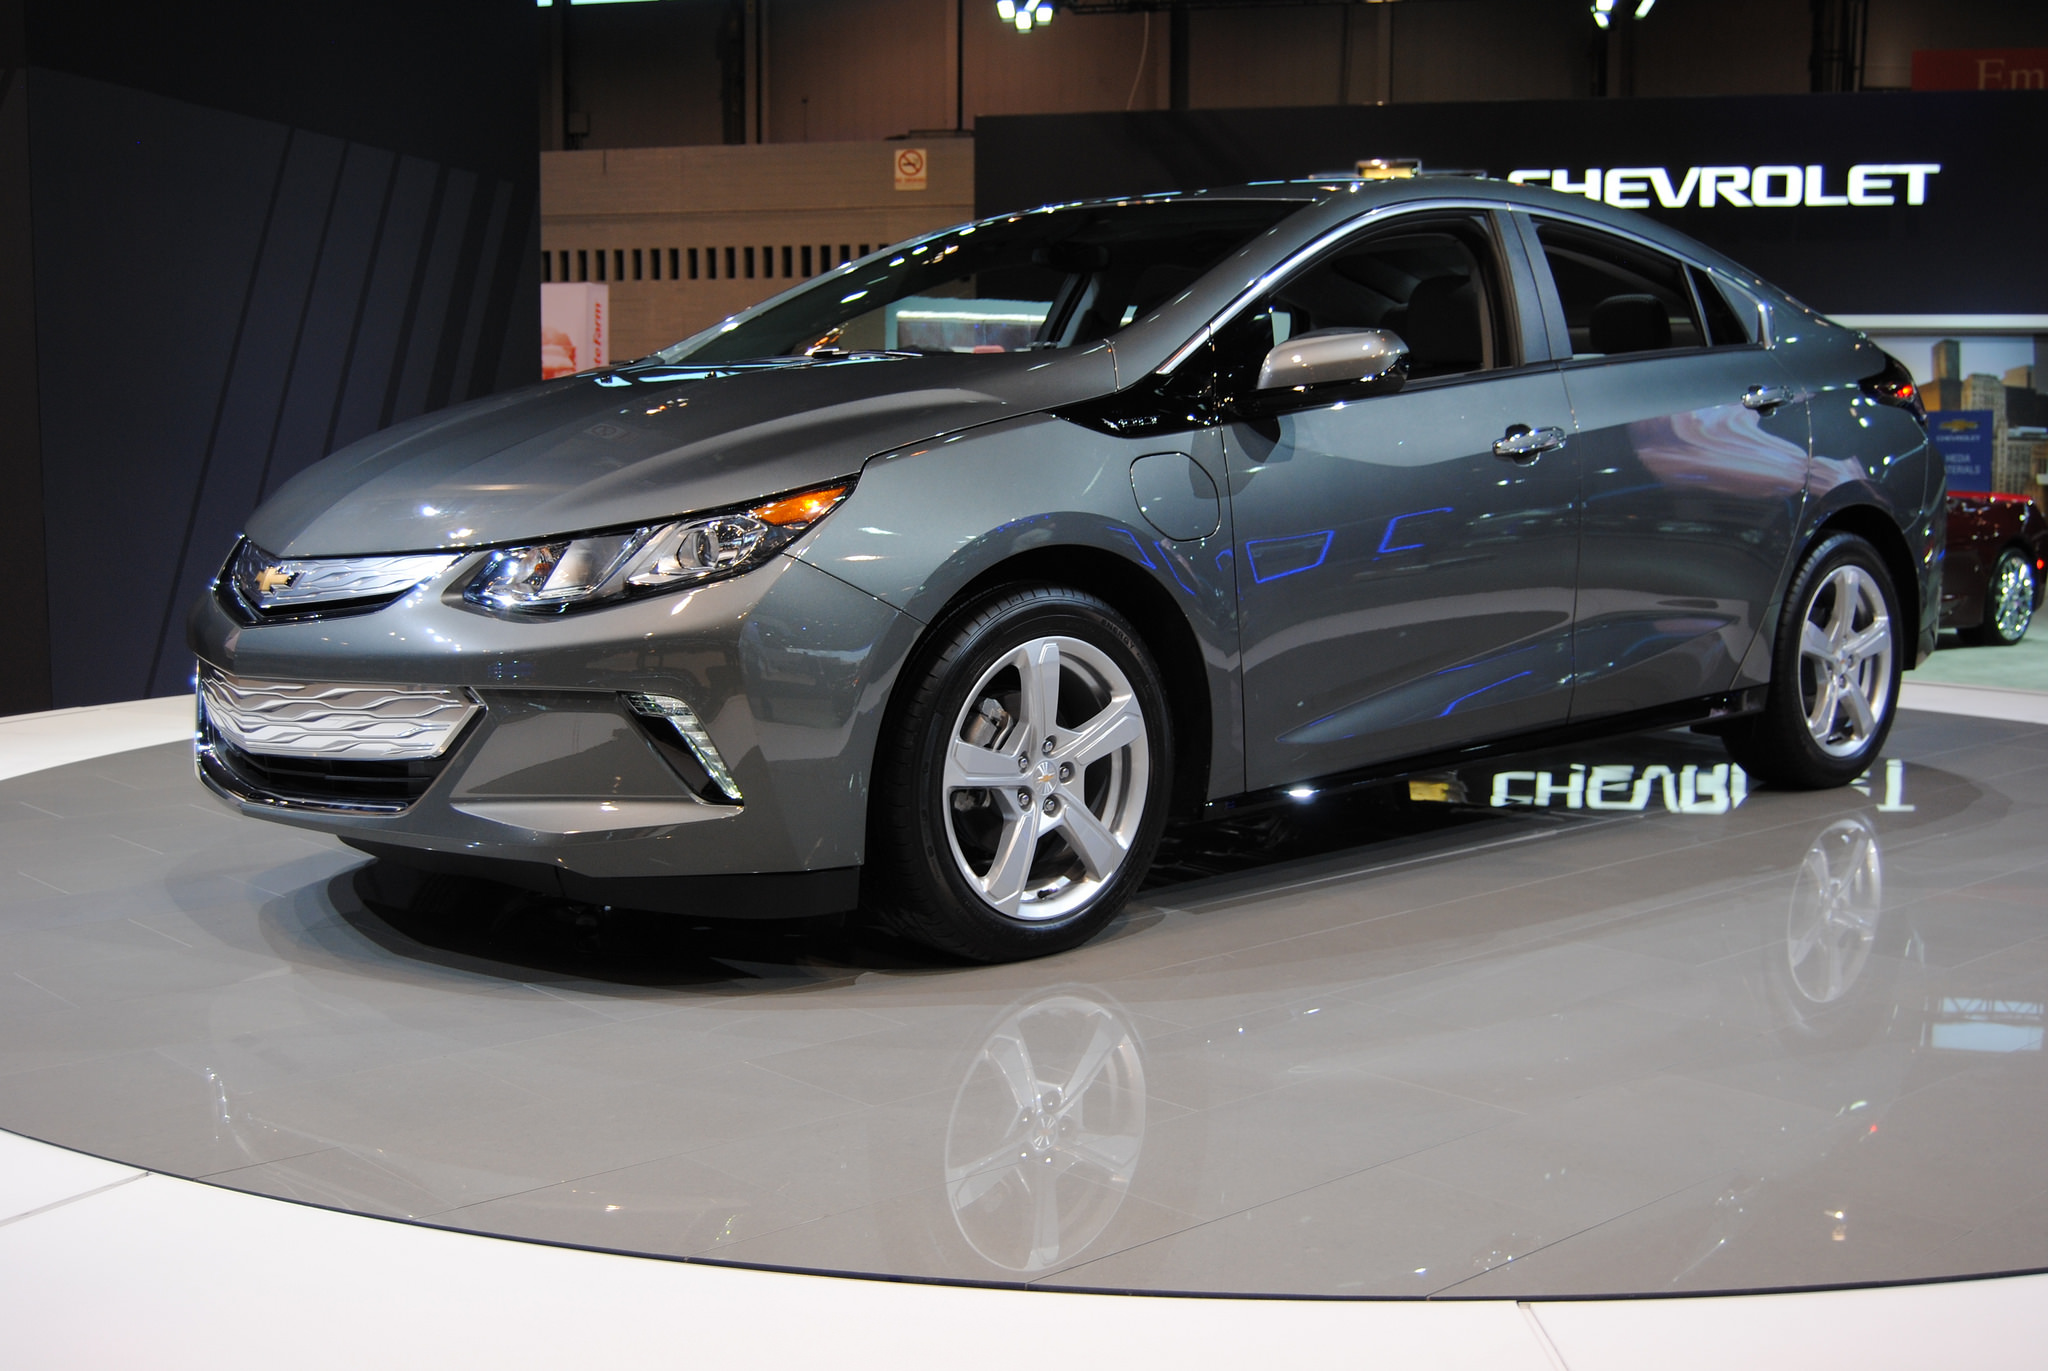 2017 Chevrolet Volt Overview | The News Wheel